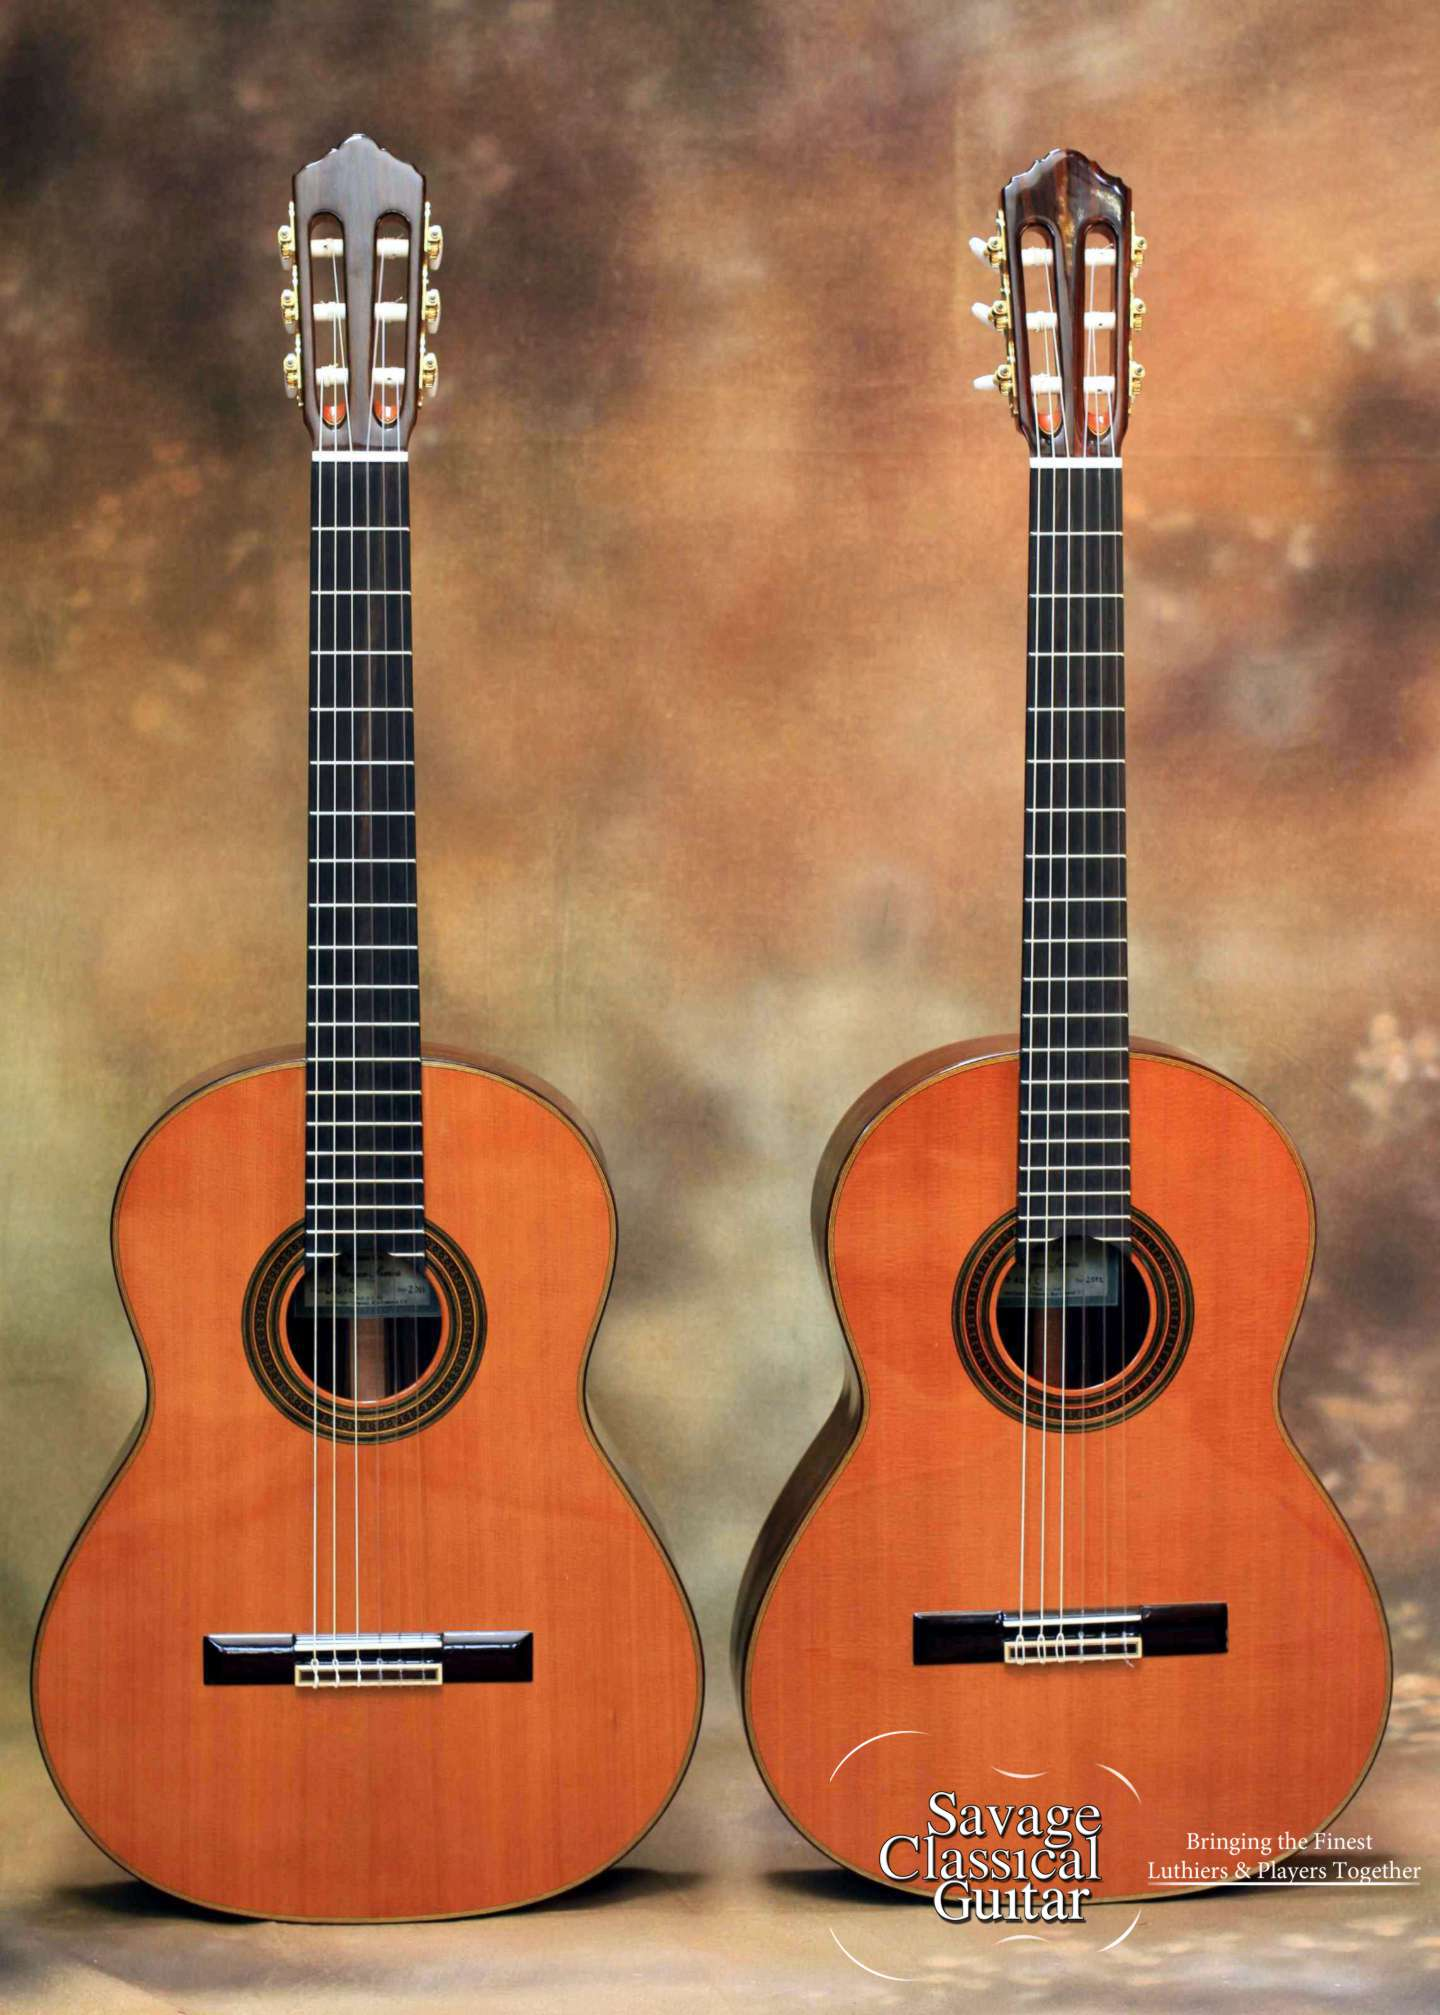 hill player classical guitar offered by savage classical guitar. Black Bedroom Furniture Sets. Home Design Ideas